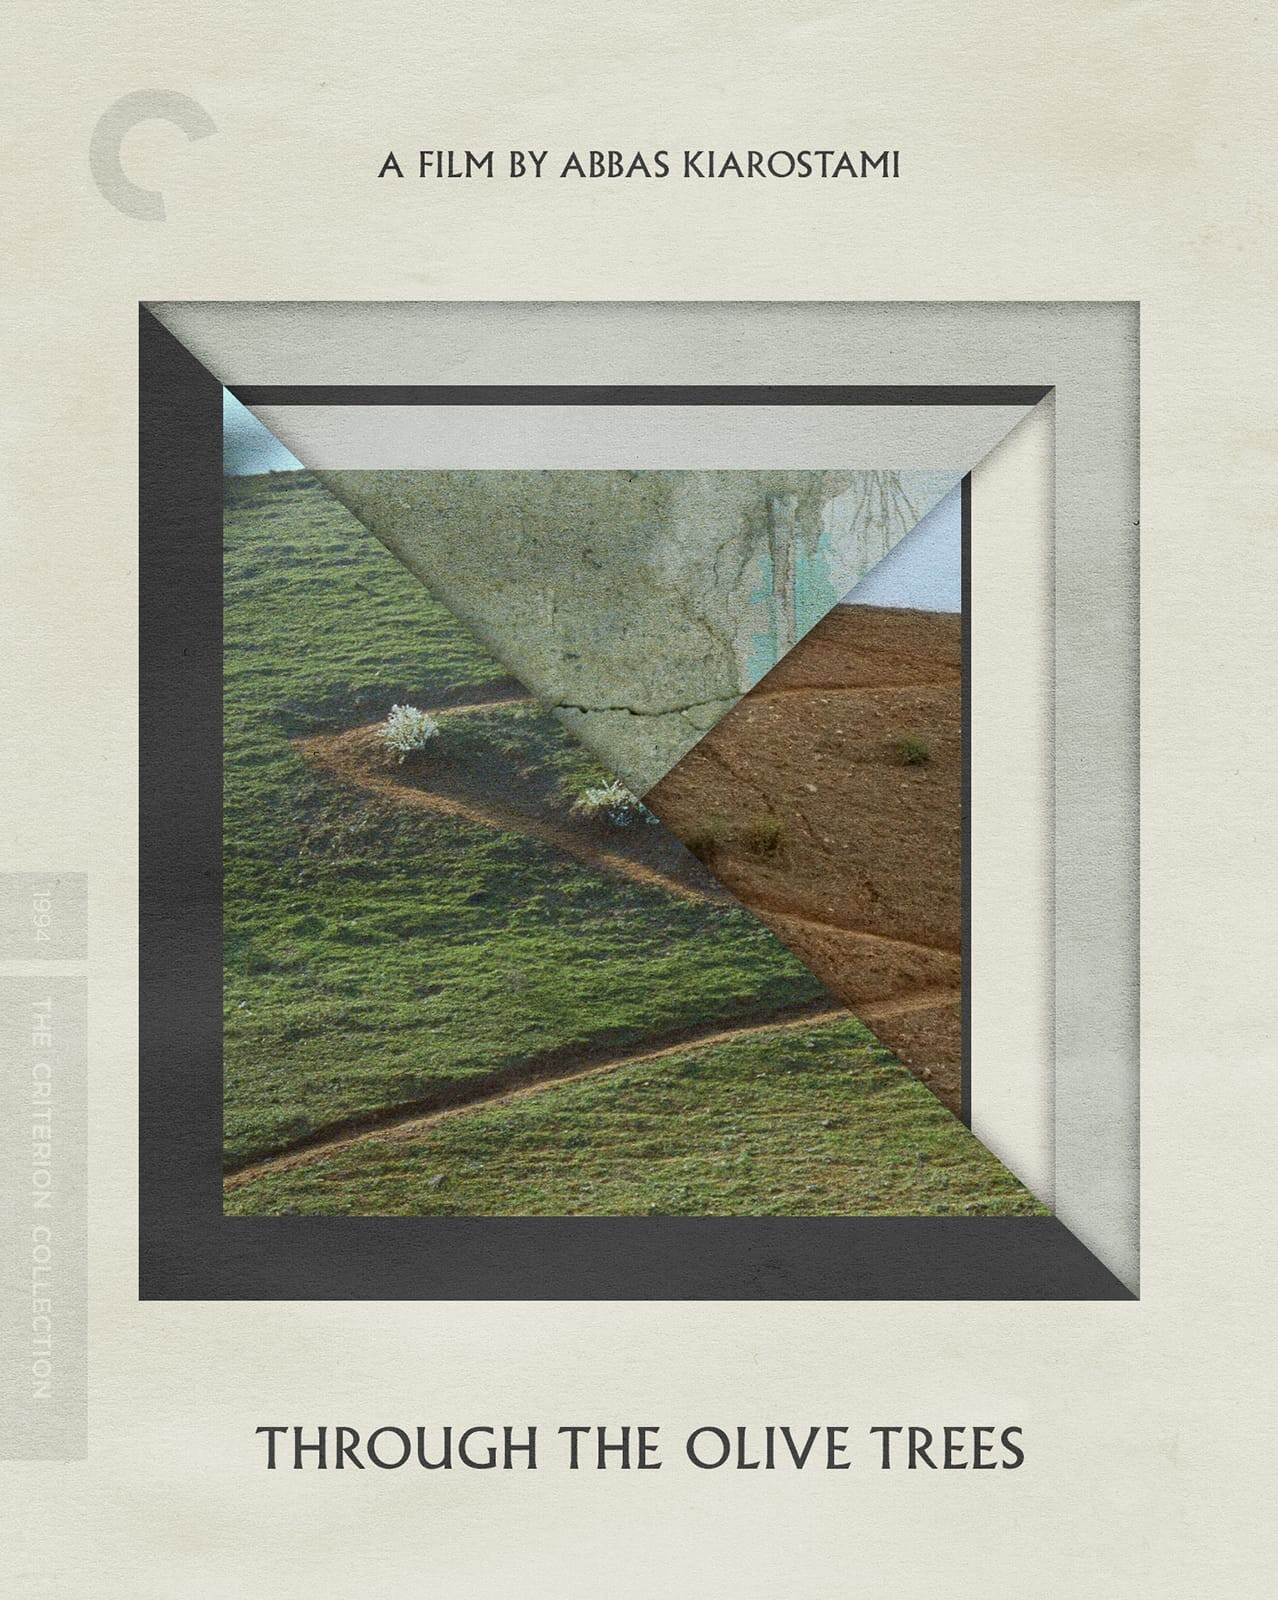 Through the Olive Trees (1994) | The Criterion Collection